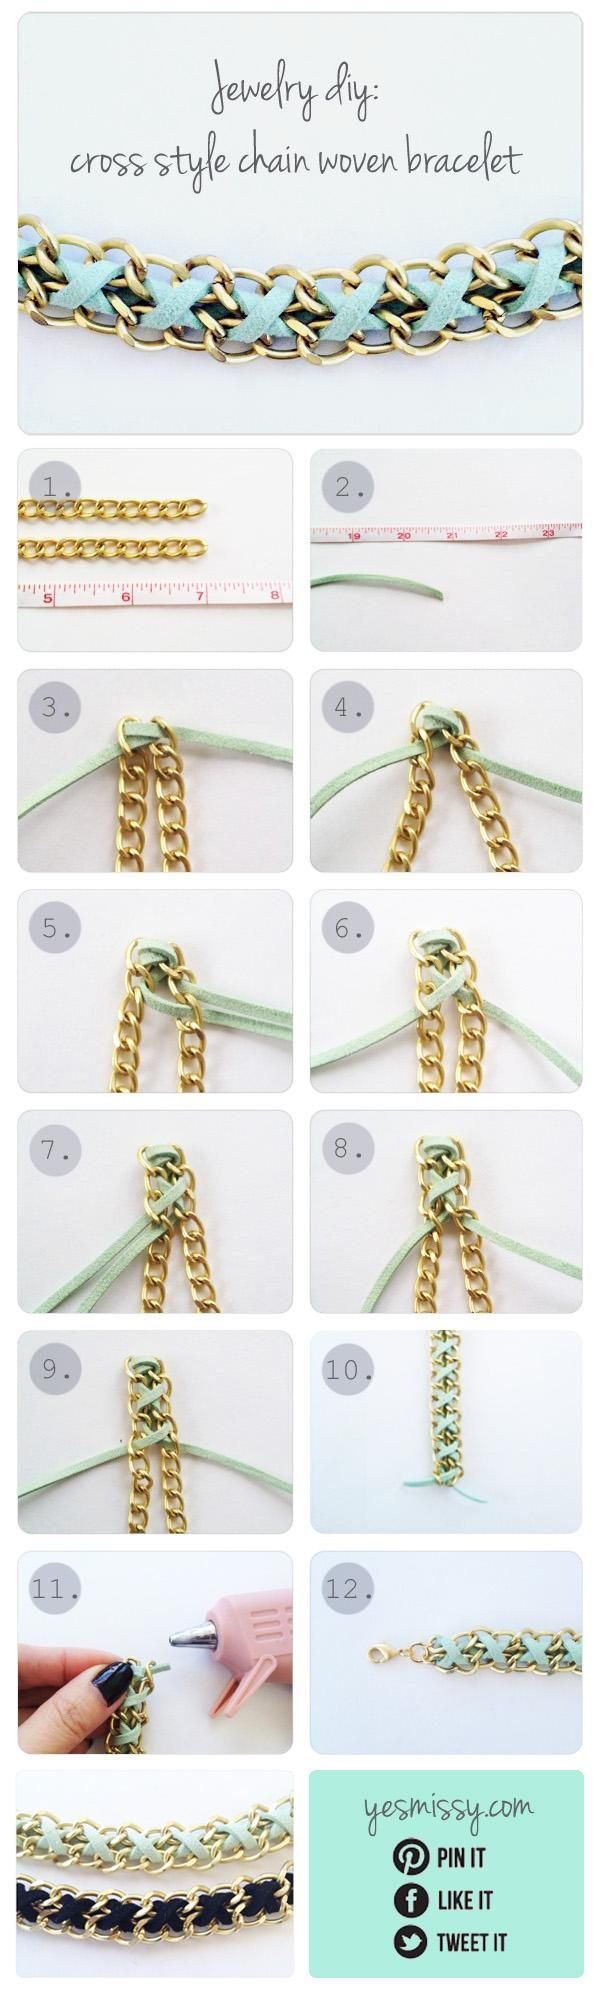 DIY Tutorial: DIY Friendship Bracelet / DIY Bracelet: Cross Style Chain Woven Bracelet - Bead&Cord